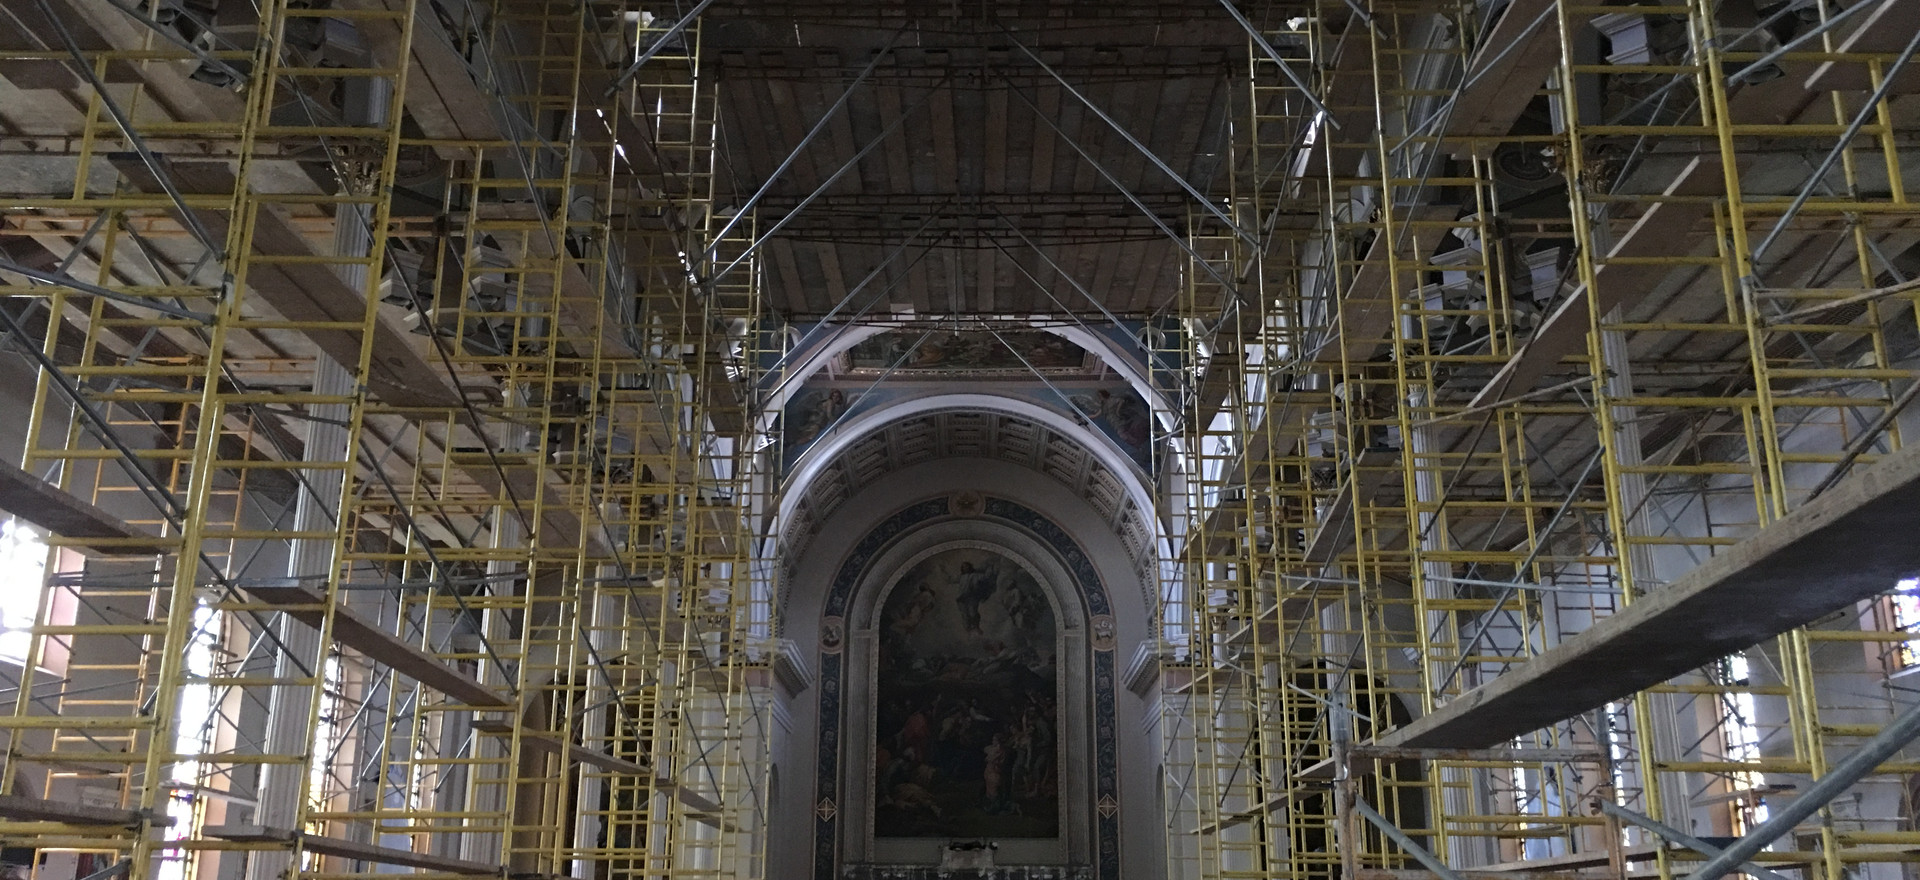 View of the interior from the vestibule.